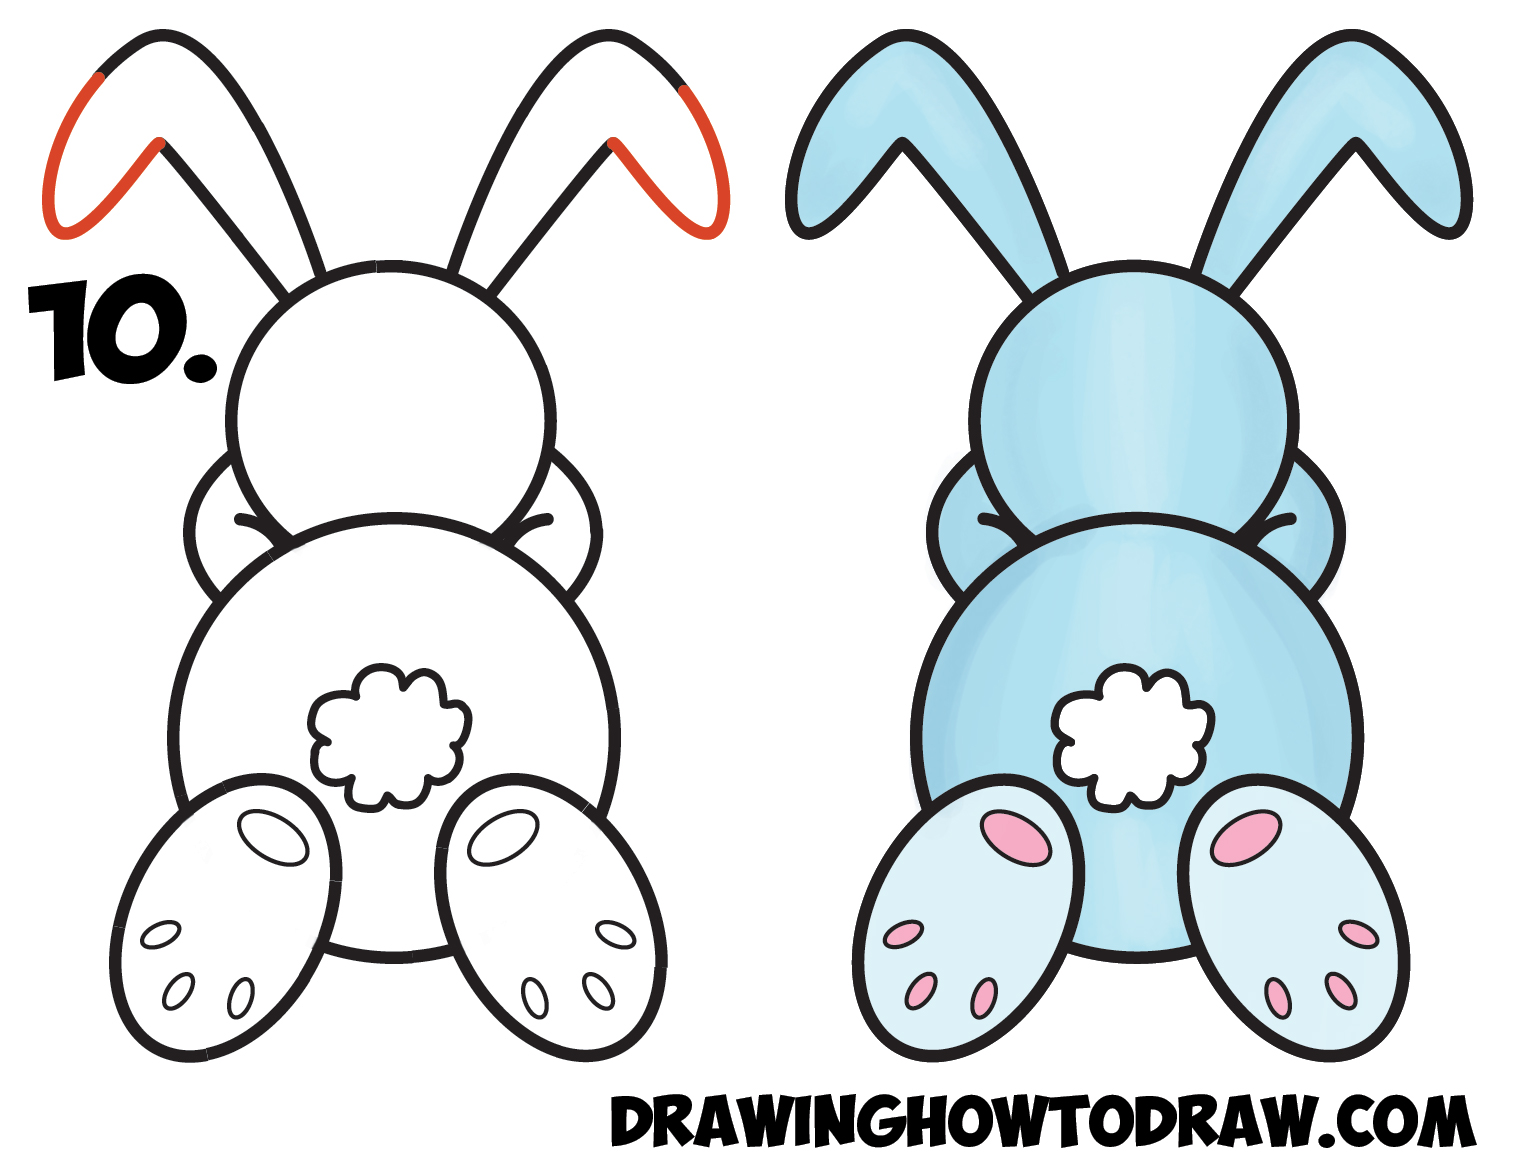 Learn How To Draw A Cute Cartoon Sleeping Bunny Rabbit From #8 Shape Simple  Steps